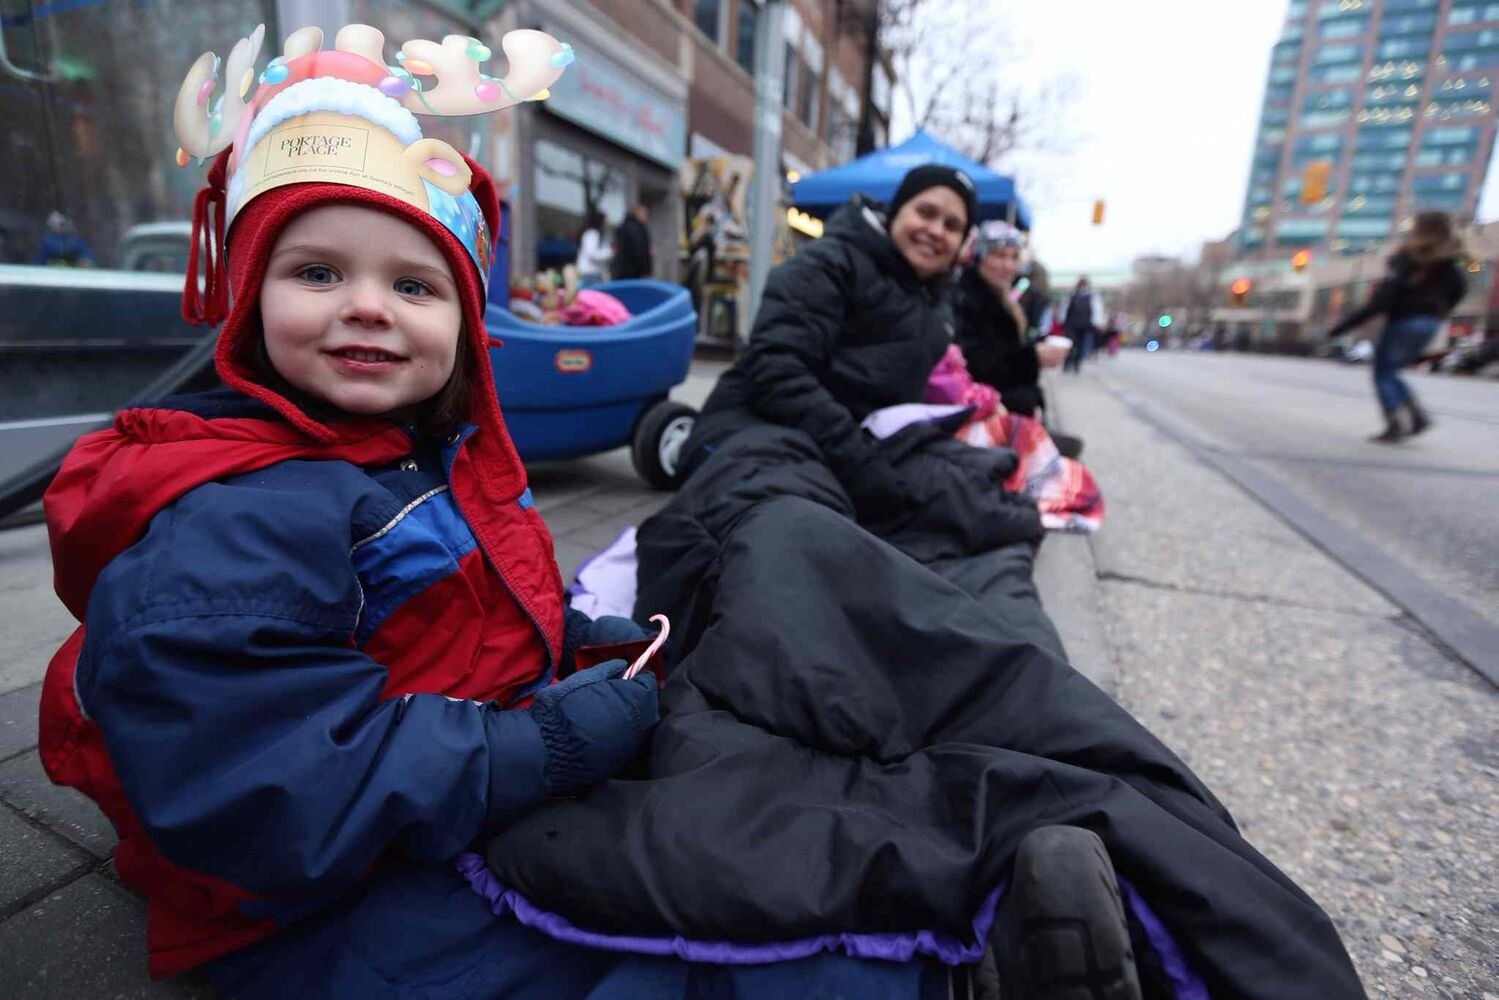 Four-year-old Madeline Dunton and her mom Sally wait along Portage Avenue for the parade to begin. (TREVOR HAGAN / WINNIPEG FREE PRESS)